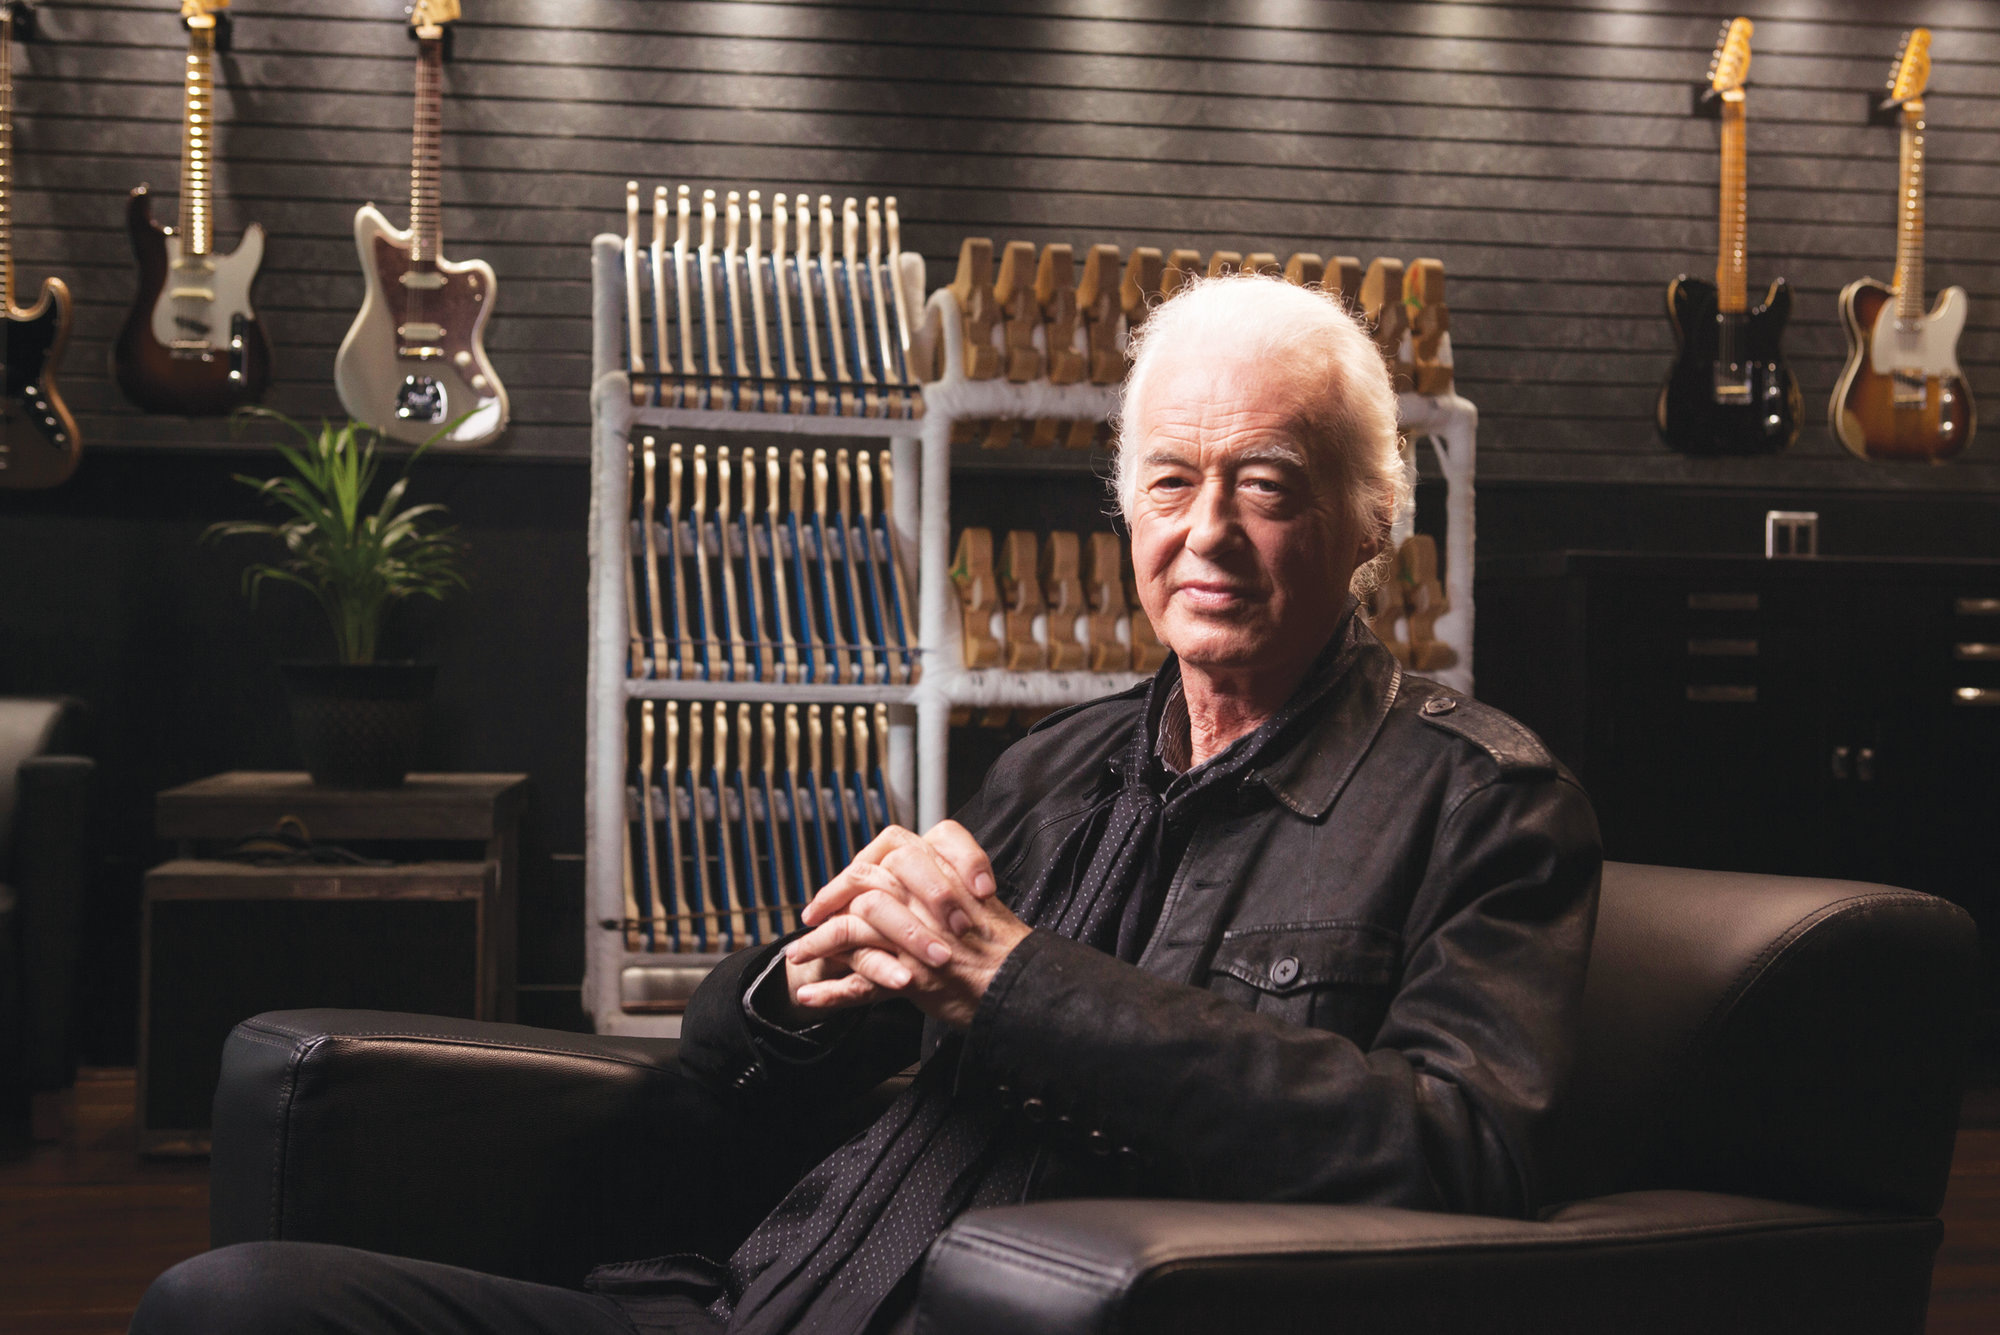 Photo by Rebecca Cabage / Invision/AP   Jimmy Page poses for a portrait at the Fender Factory in Corona, California. Page reflects on the wild year of 1968, when the Yardbirds crashed and Led Zeppelin was born.